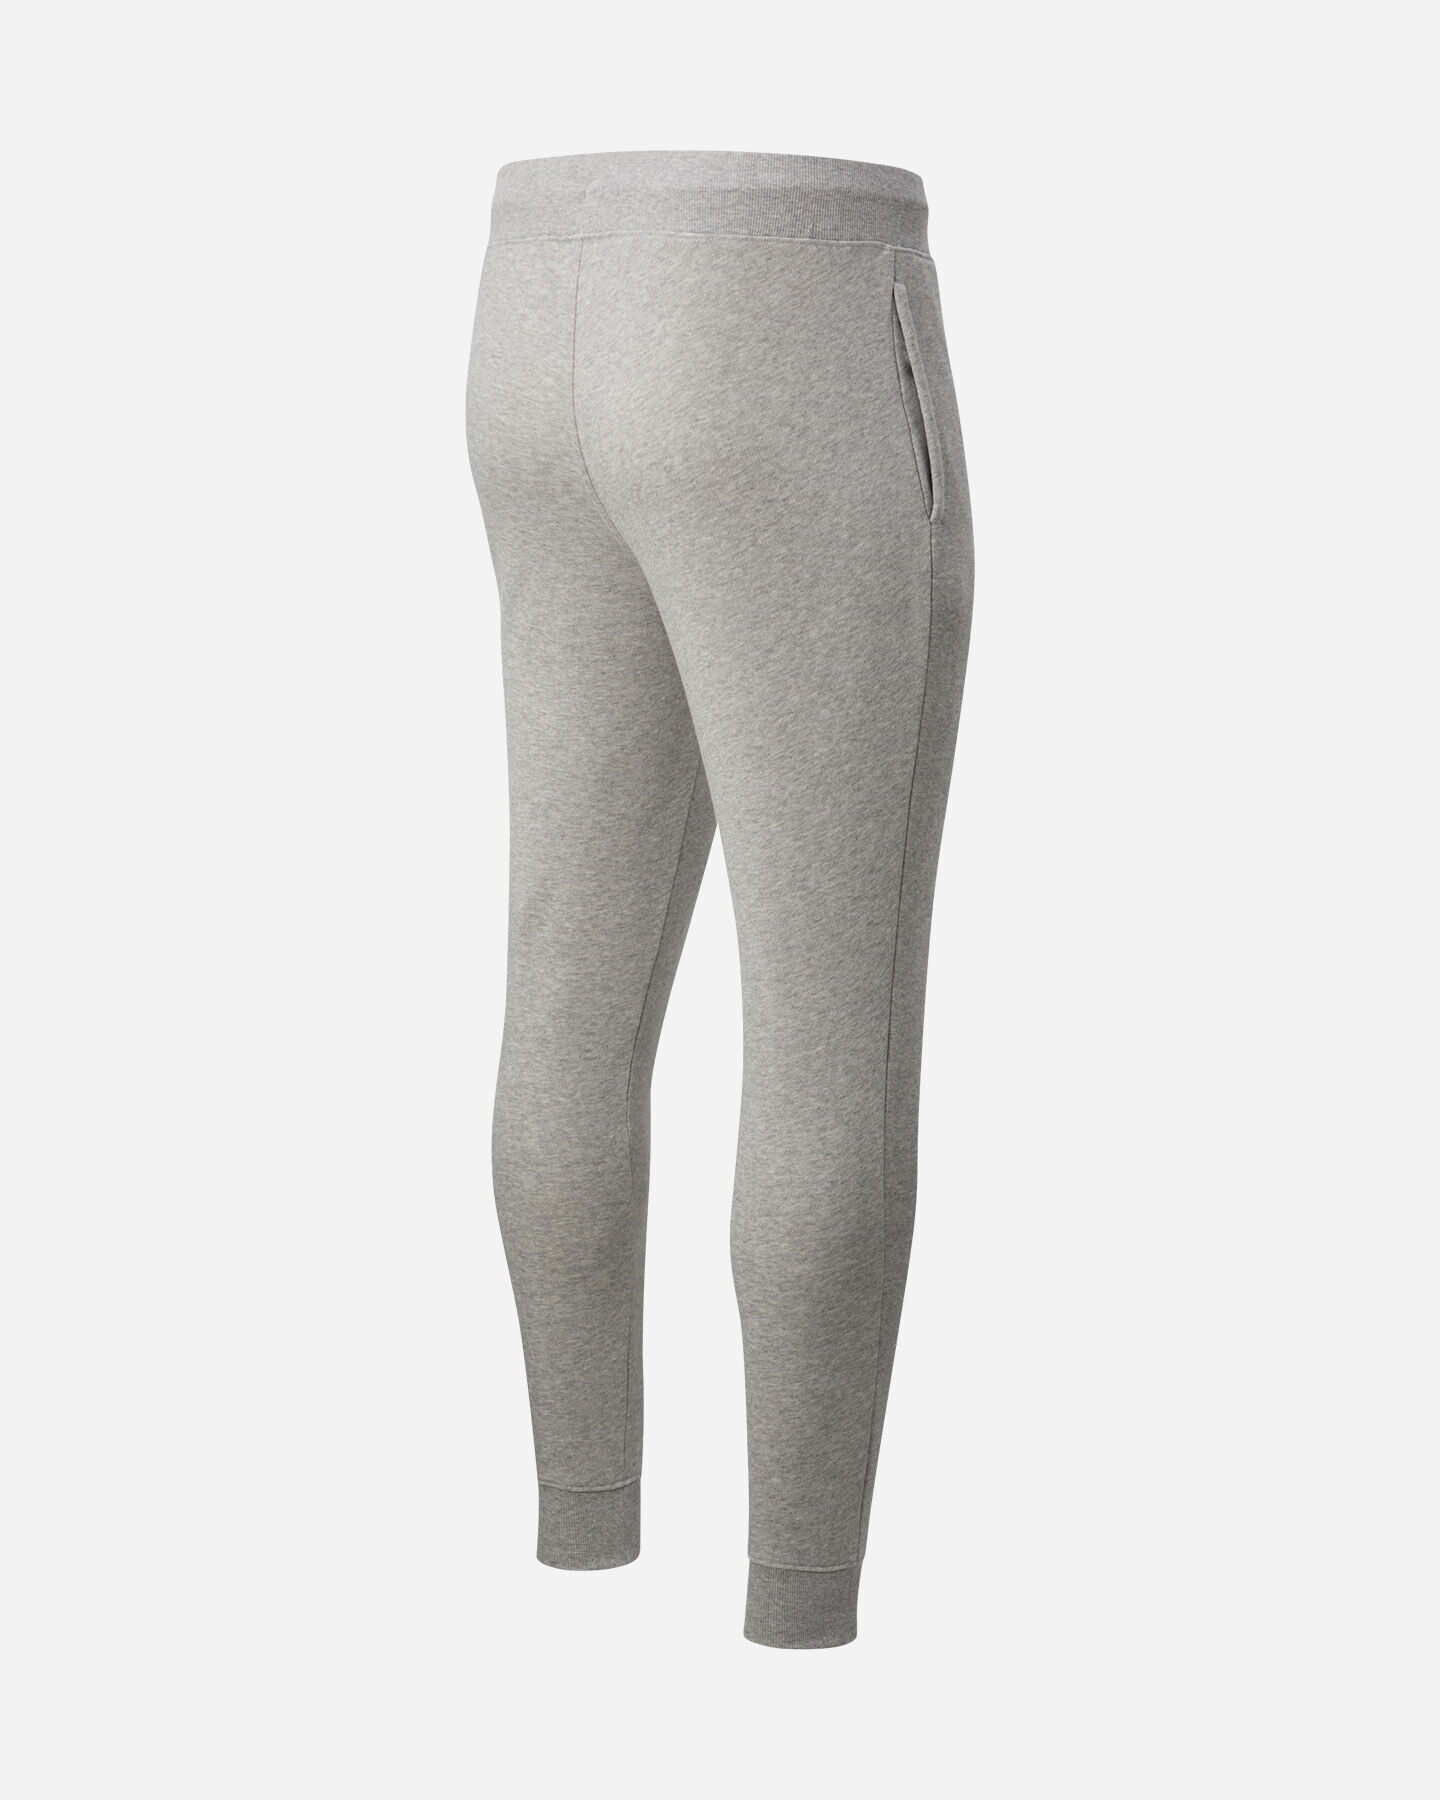 Pantalone NEW BALANCE CORE ATHLETIC SLIM M S5139880 scatto 5